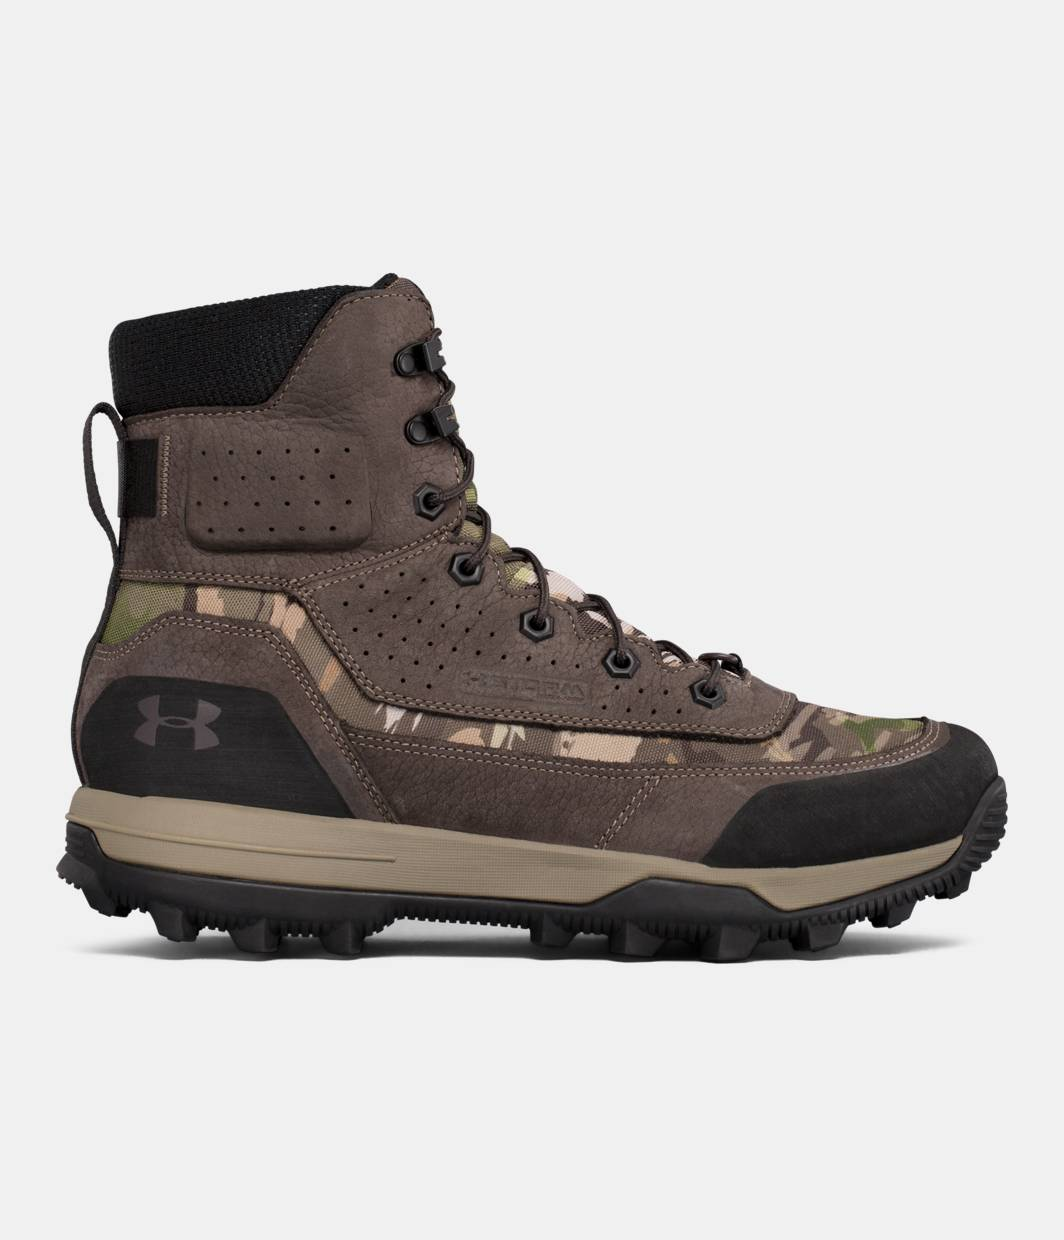 a35f5822383 Men's Boots | Under Armour US